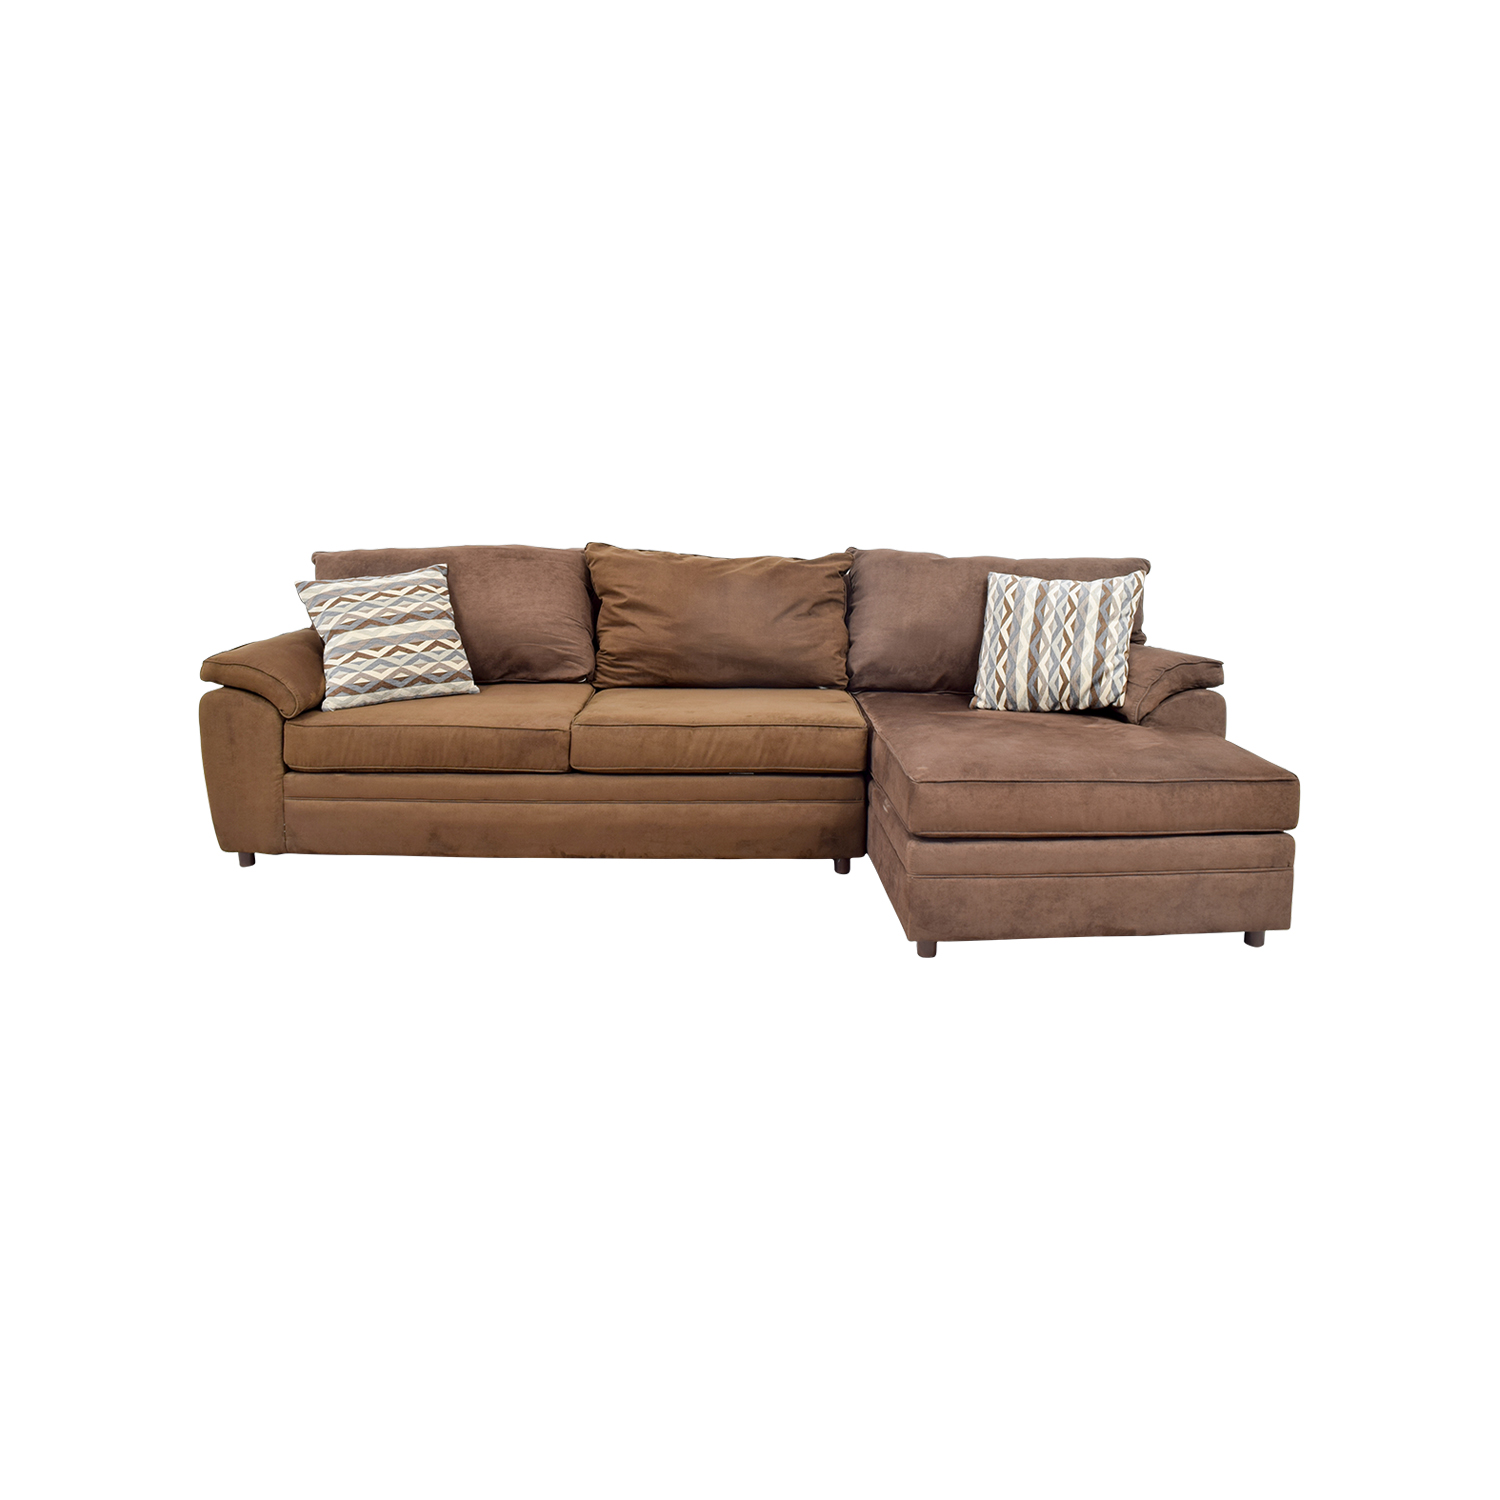 46% OFF - Bob\'s Discount Furniture Bob\'s Furniture Brown Chaise Sectional /  Sofas